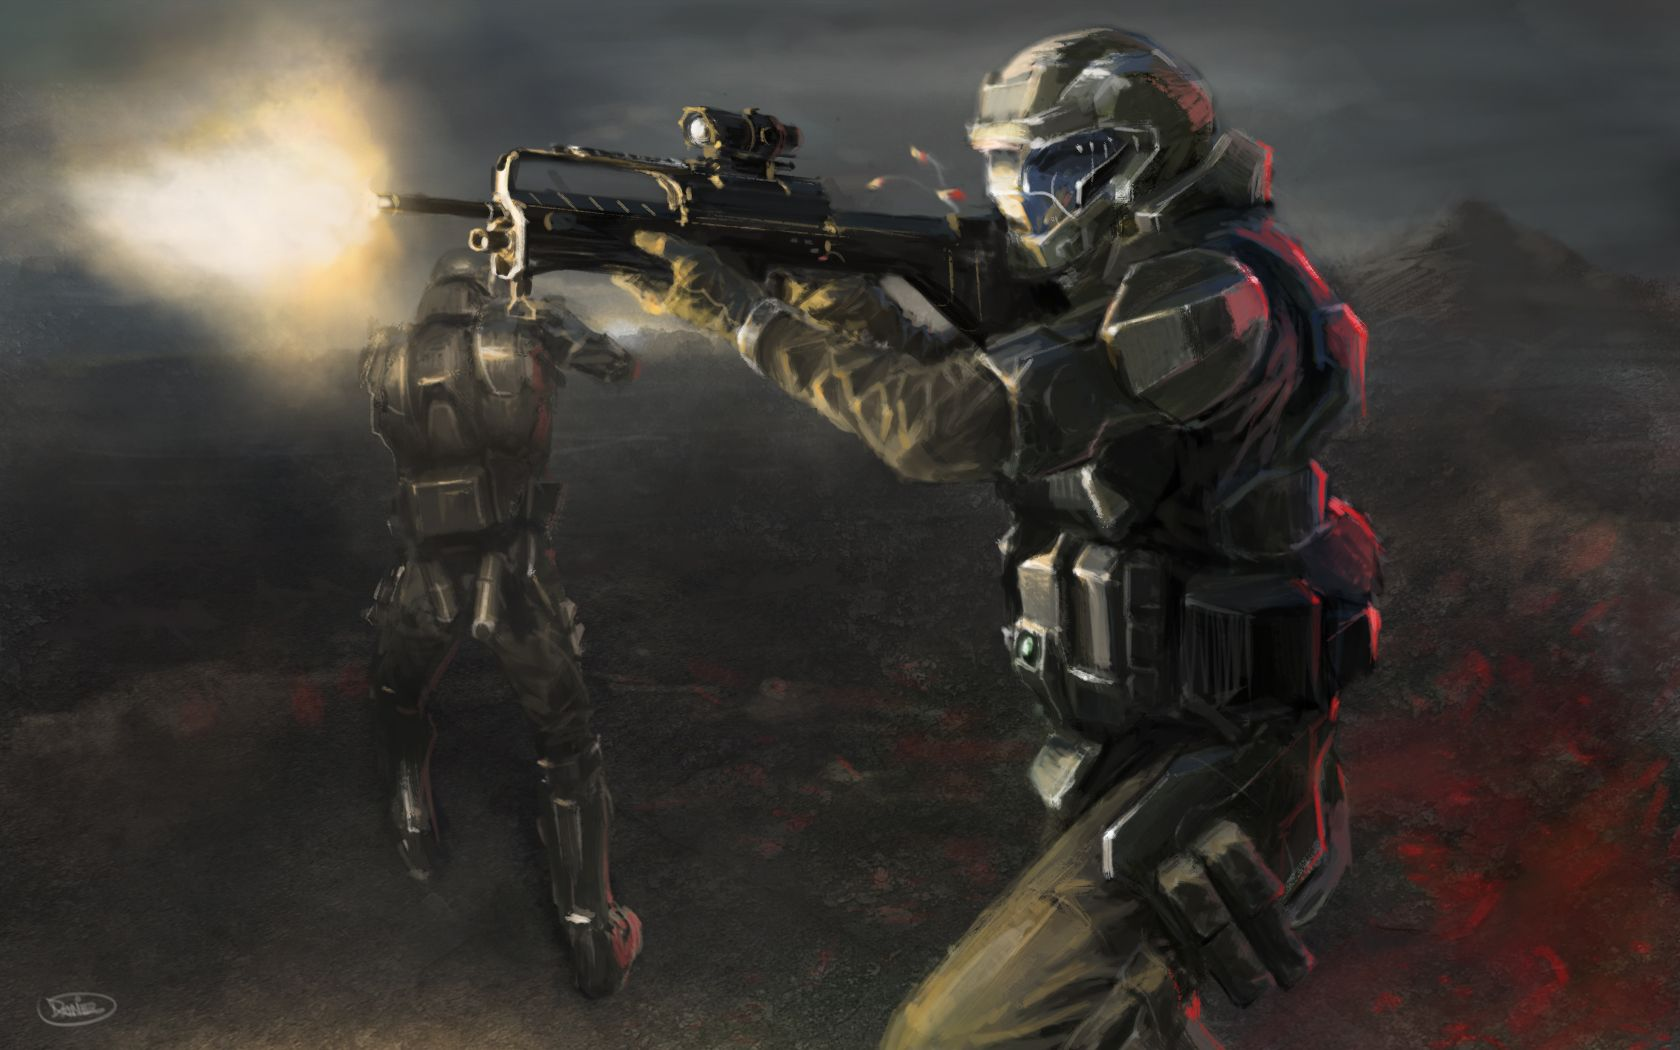 Halo 3: ODST Wallpaper by Minime637 on DeviantArt